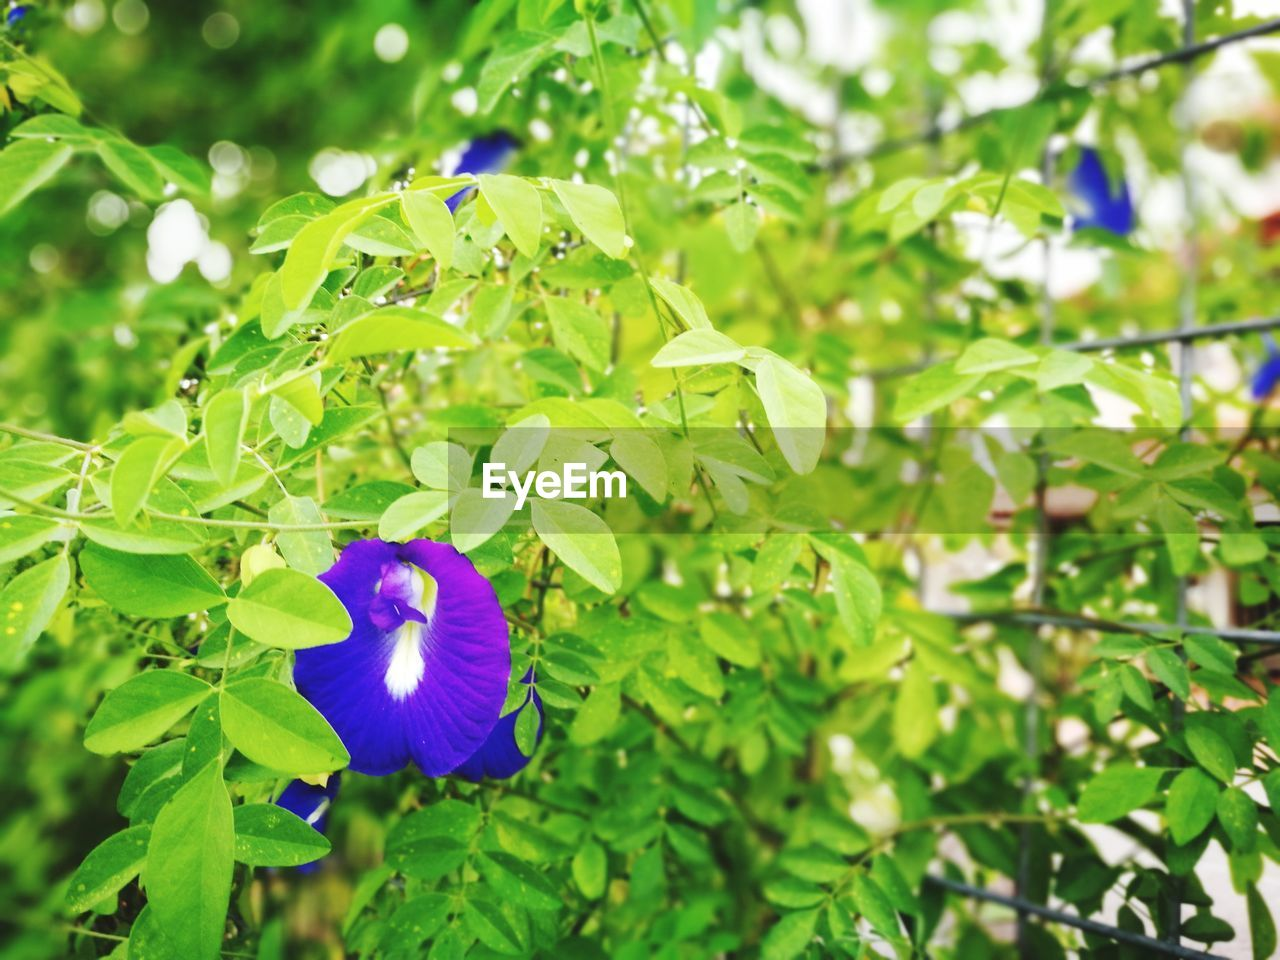 growth, flower, beauty in nature, nature, fragility, freshness, green color, plant, day, leaf, petal, focus on foreground, outdoors, flower head, no people, blue, close-up, blooming